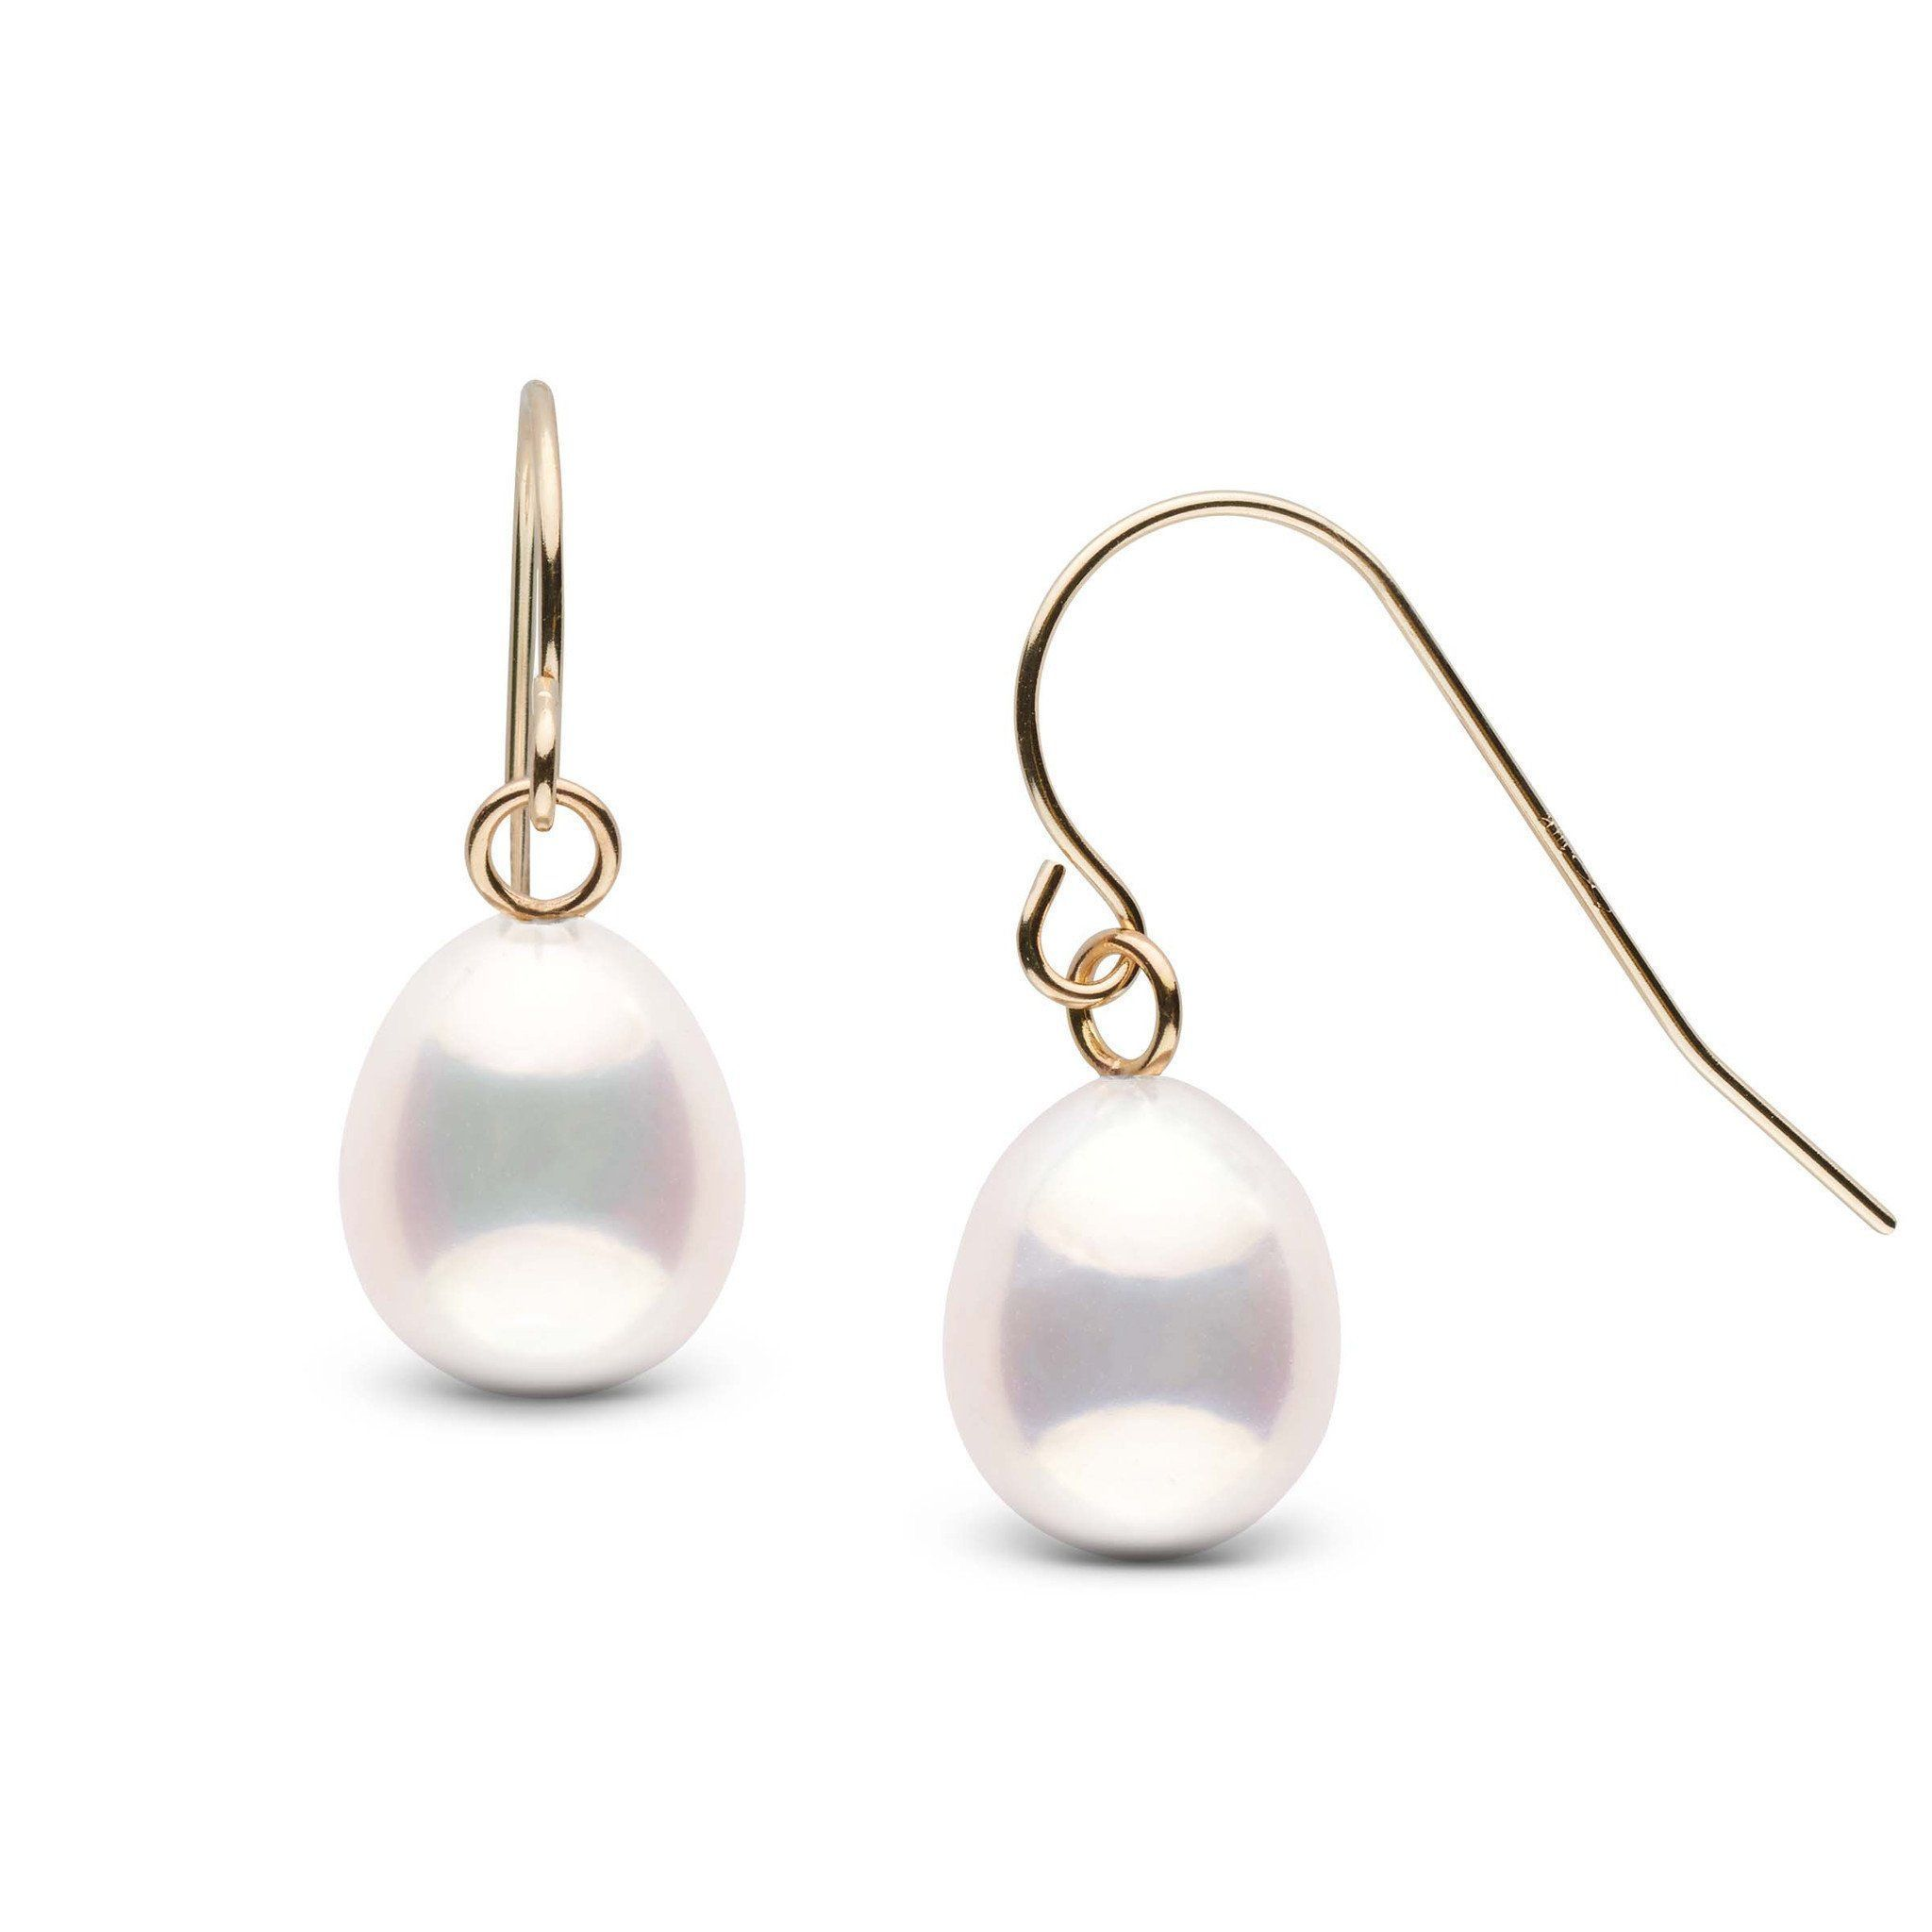 White Metallic Drop 7.0-8.0 mm Freshwater Pearl French Wire Earrings